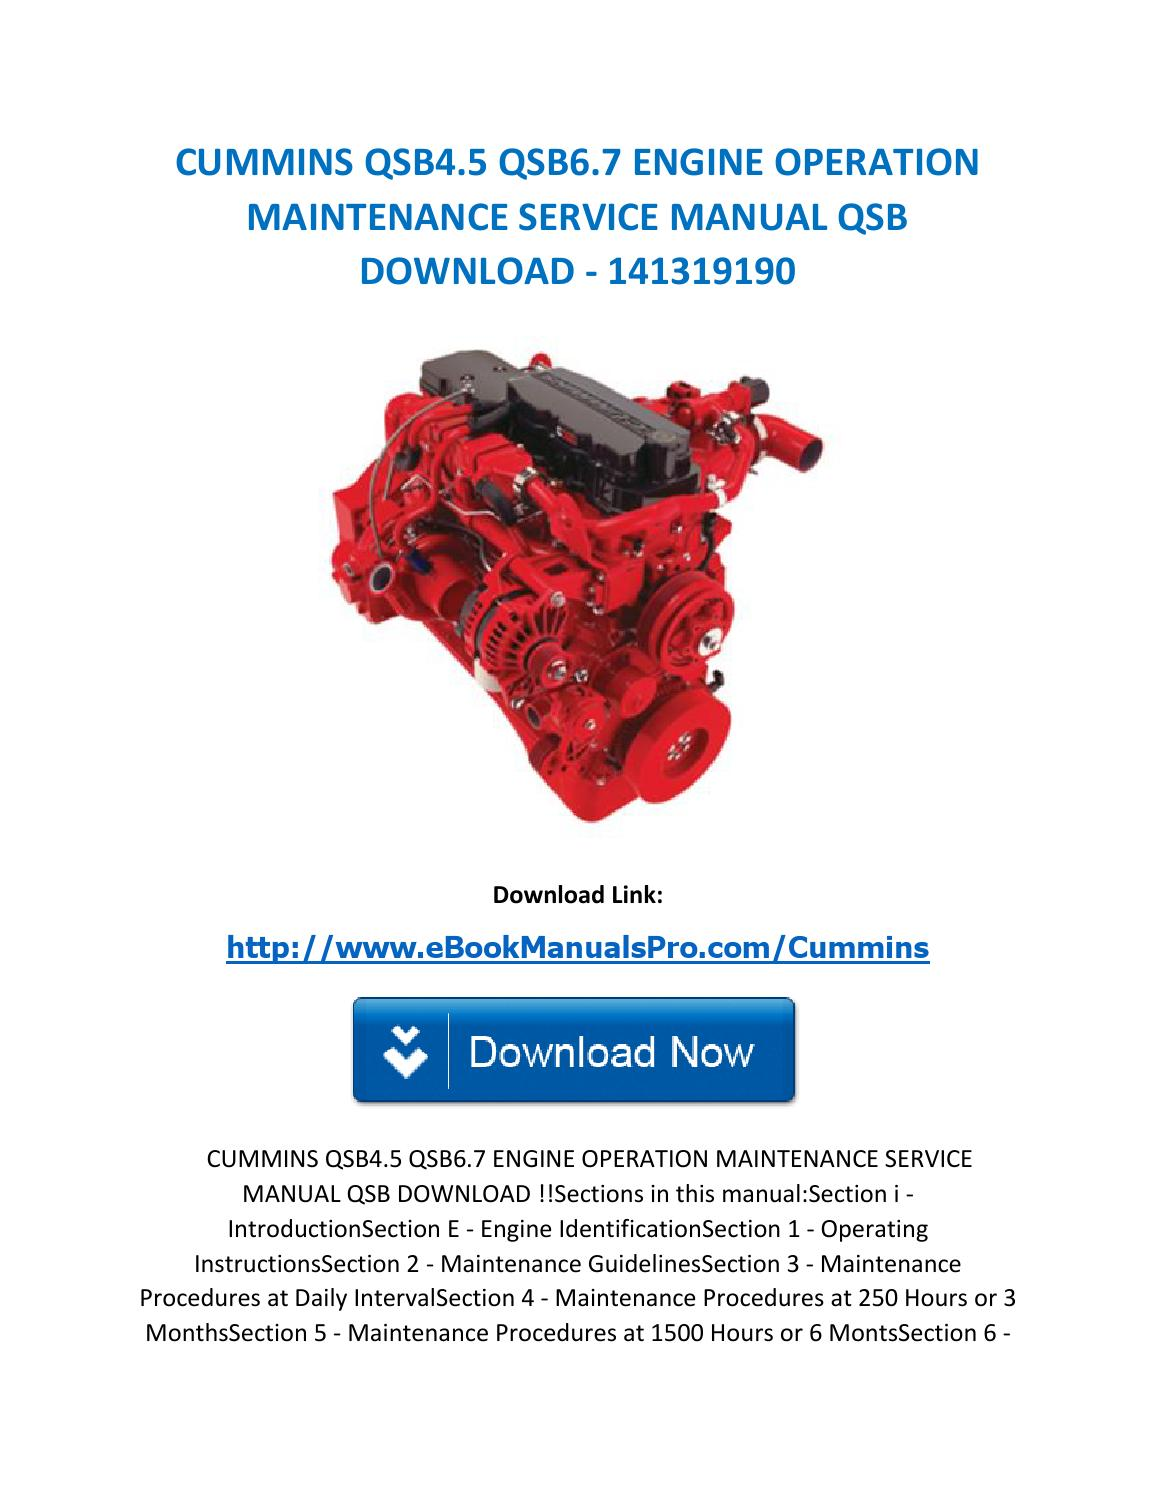 Cummins qsb4 5 qsb6 7 engine operation maintenance service manual qsb  download 141319190 by karl casino - issuu